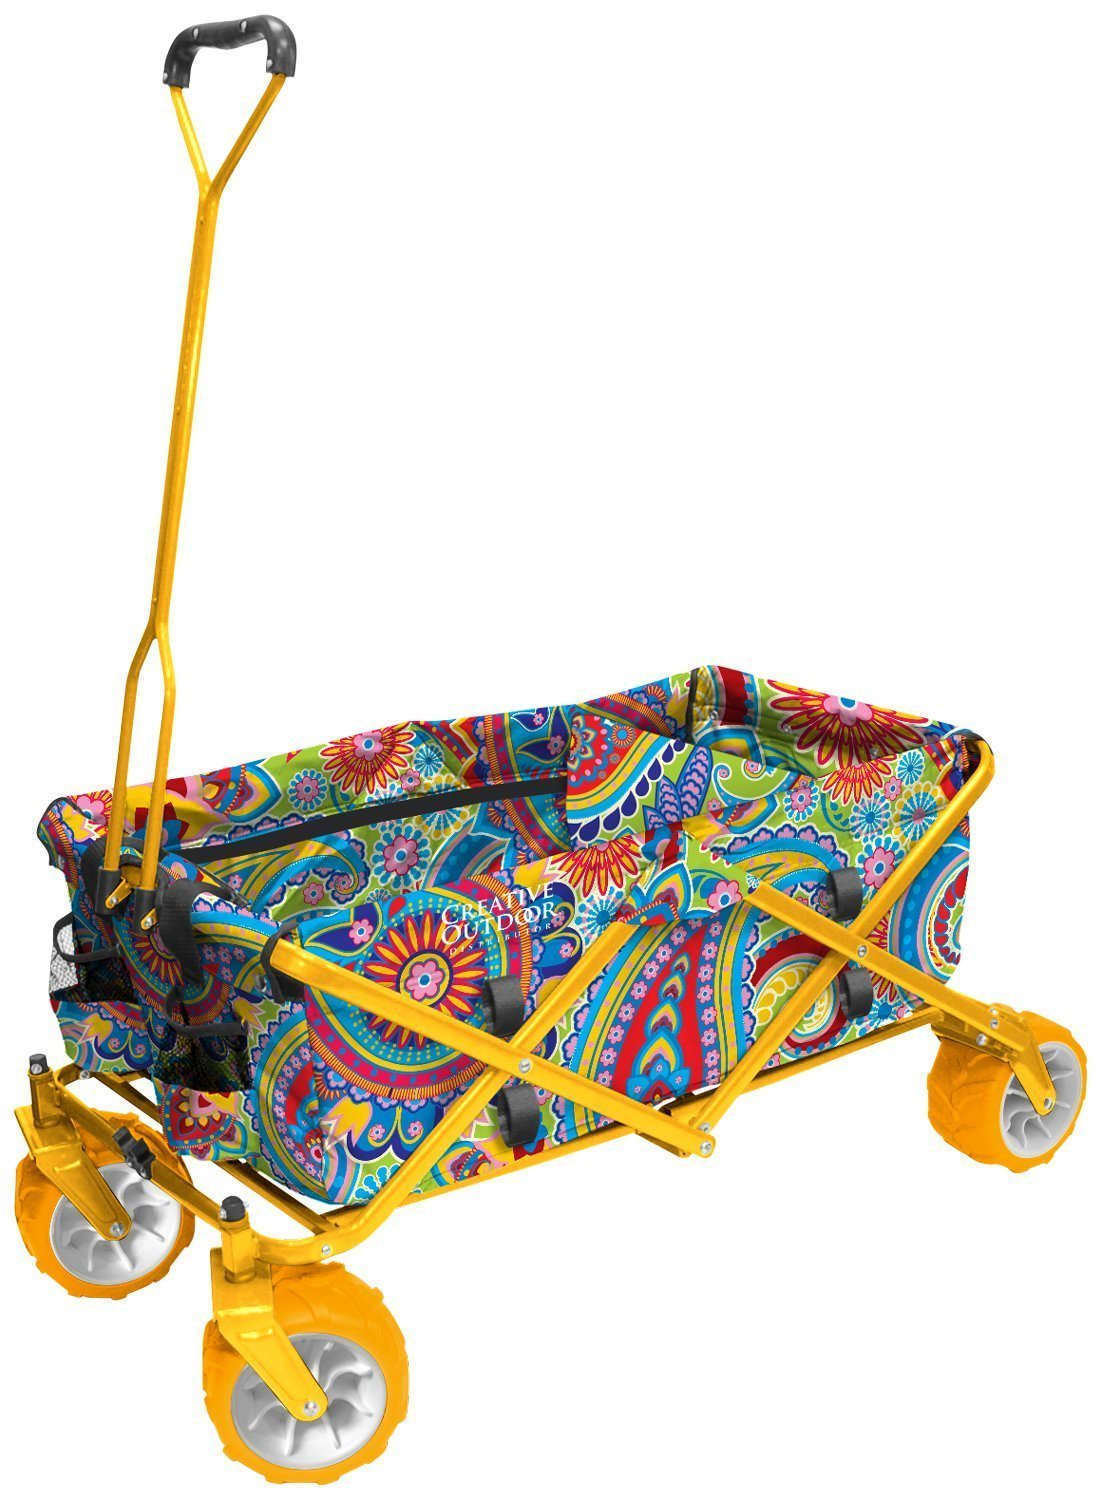 All-Terrain Folding Wagon, (Paisley Yellow) Multipurpose Cart by CREATIVE OUTDOOR DISTRIBUTOR USA